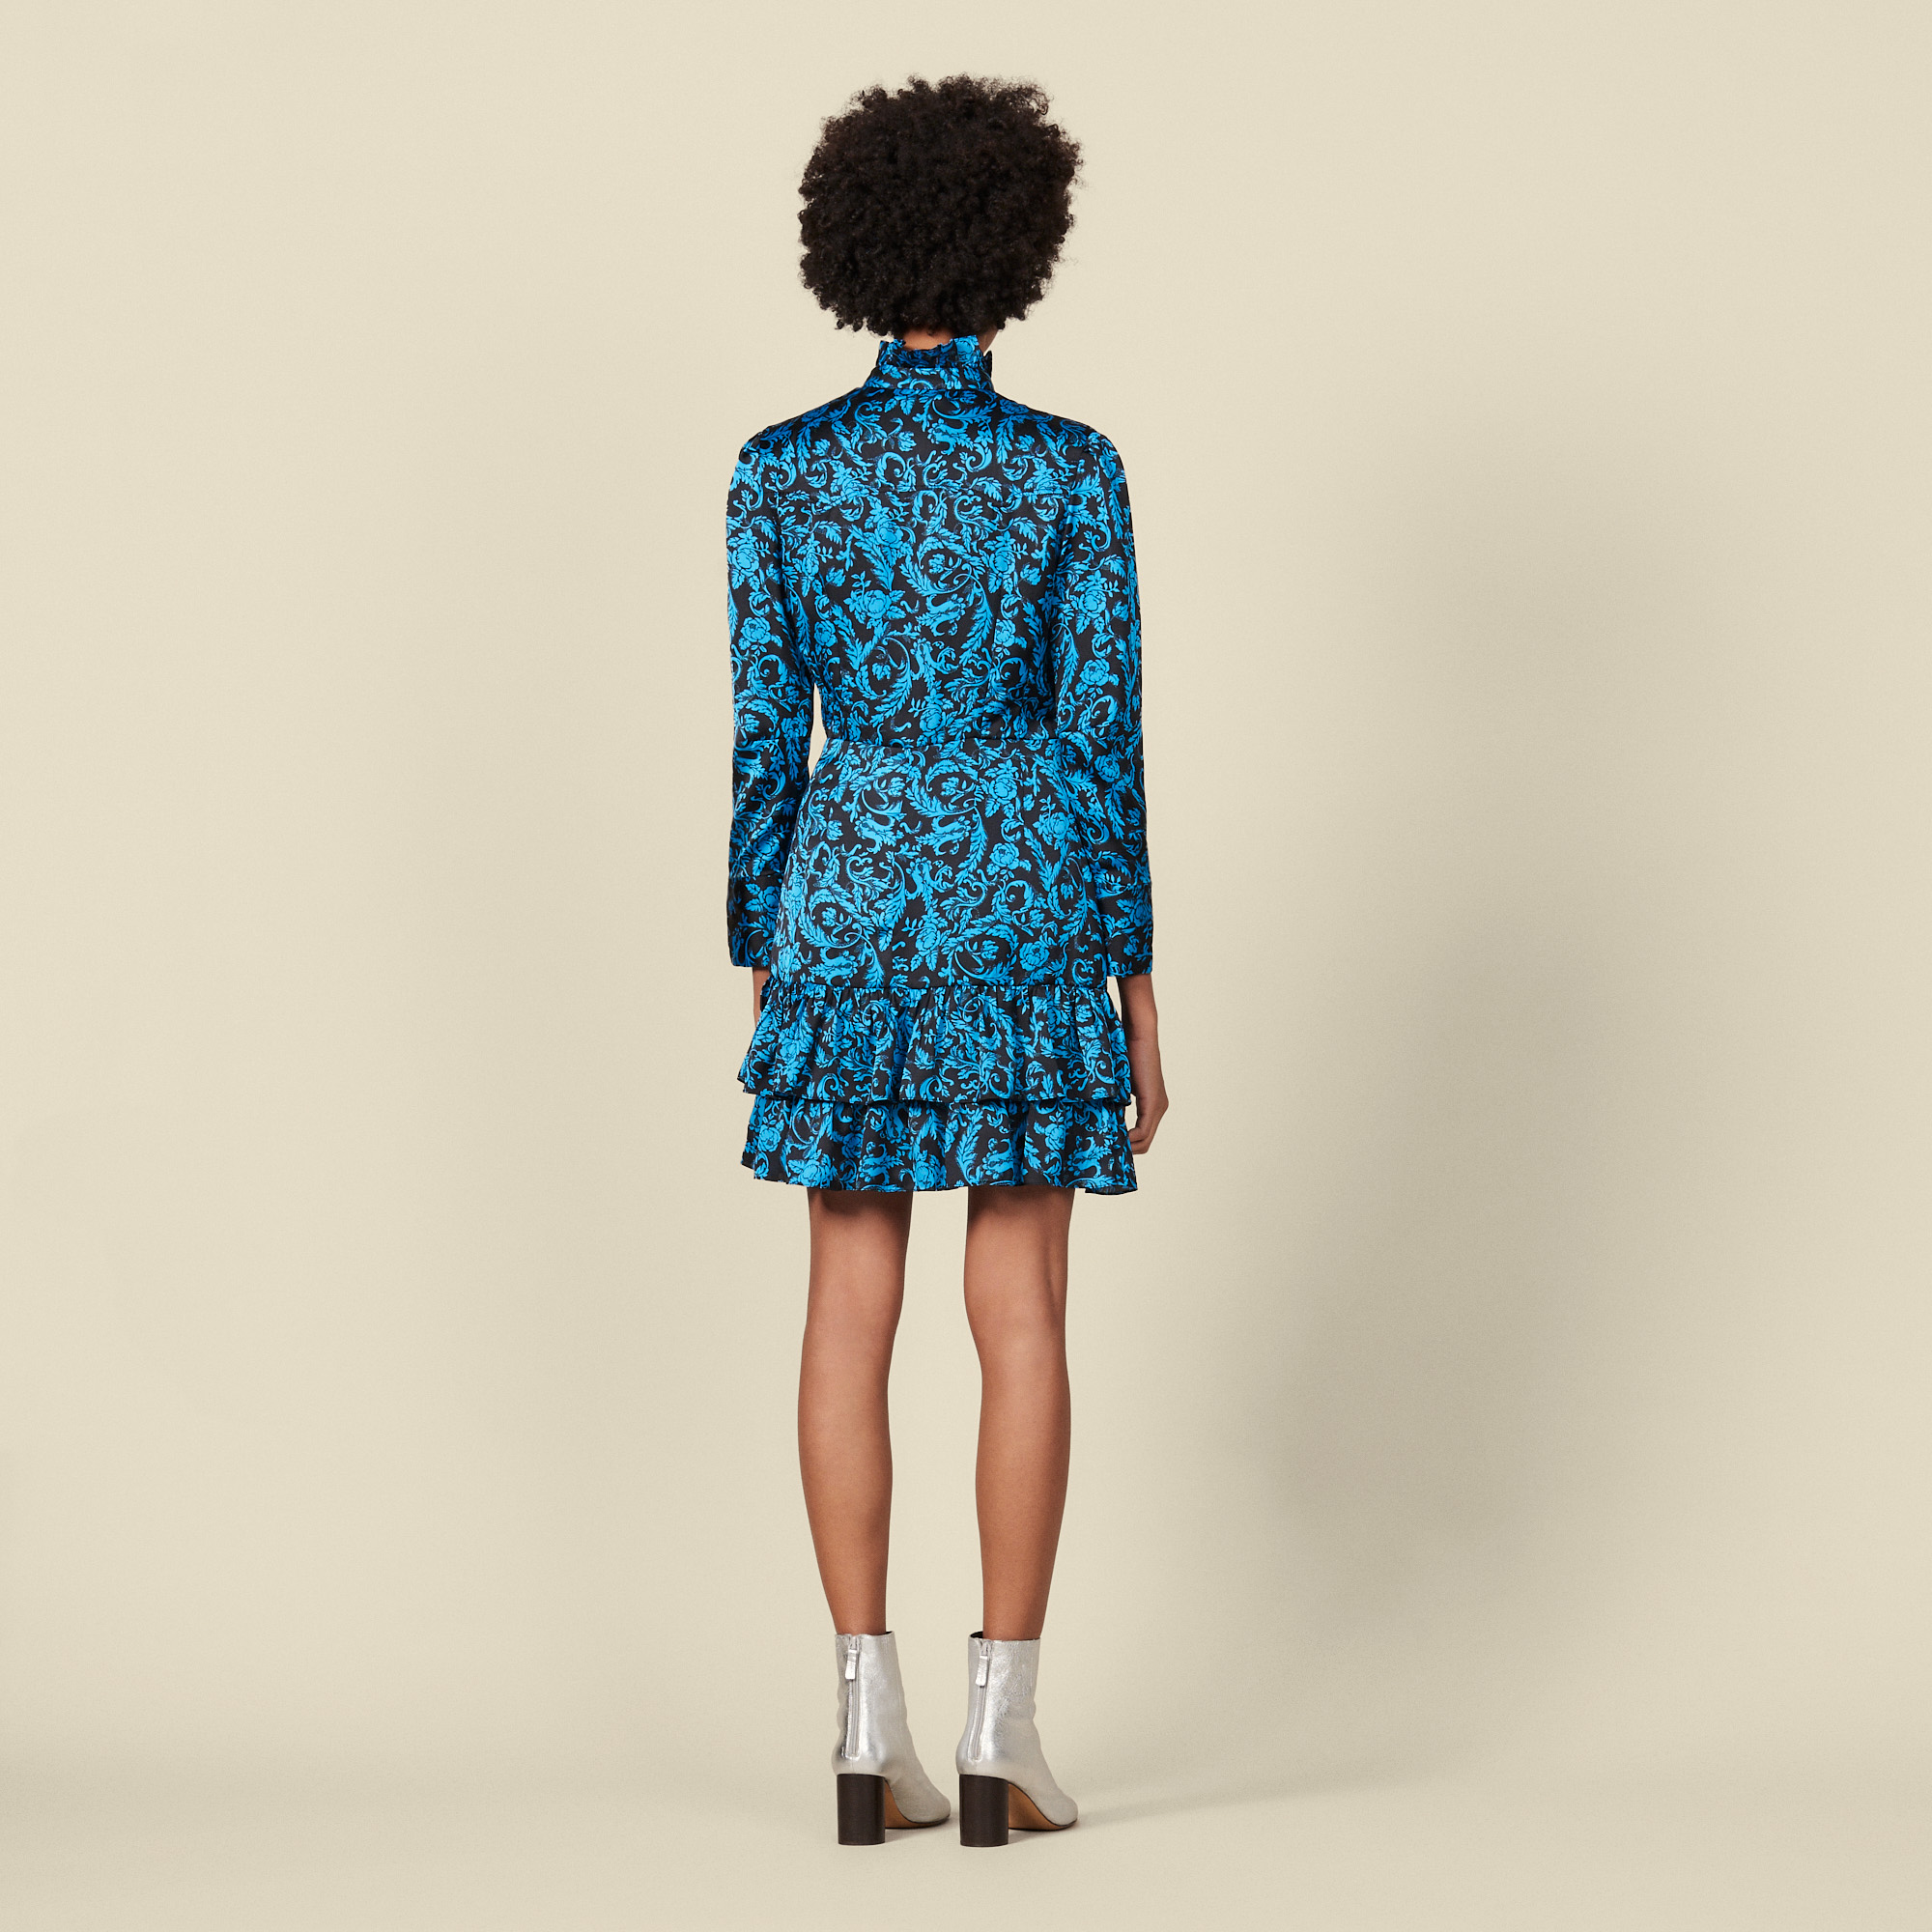 Printed dress with ruffles & high collar - Blue